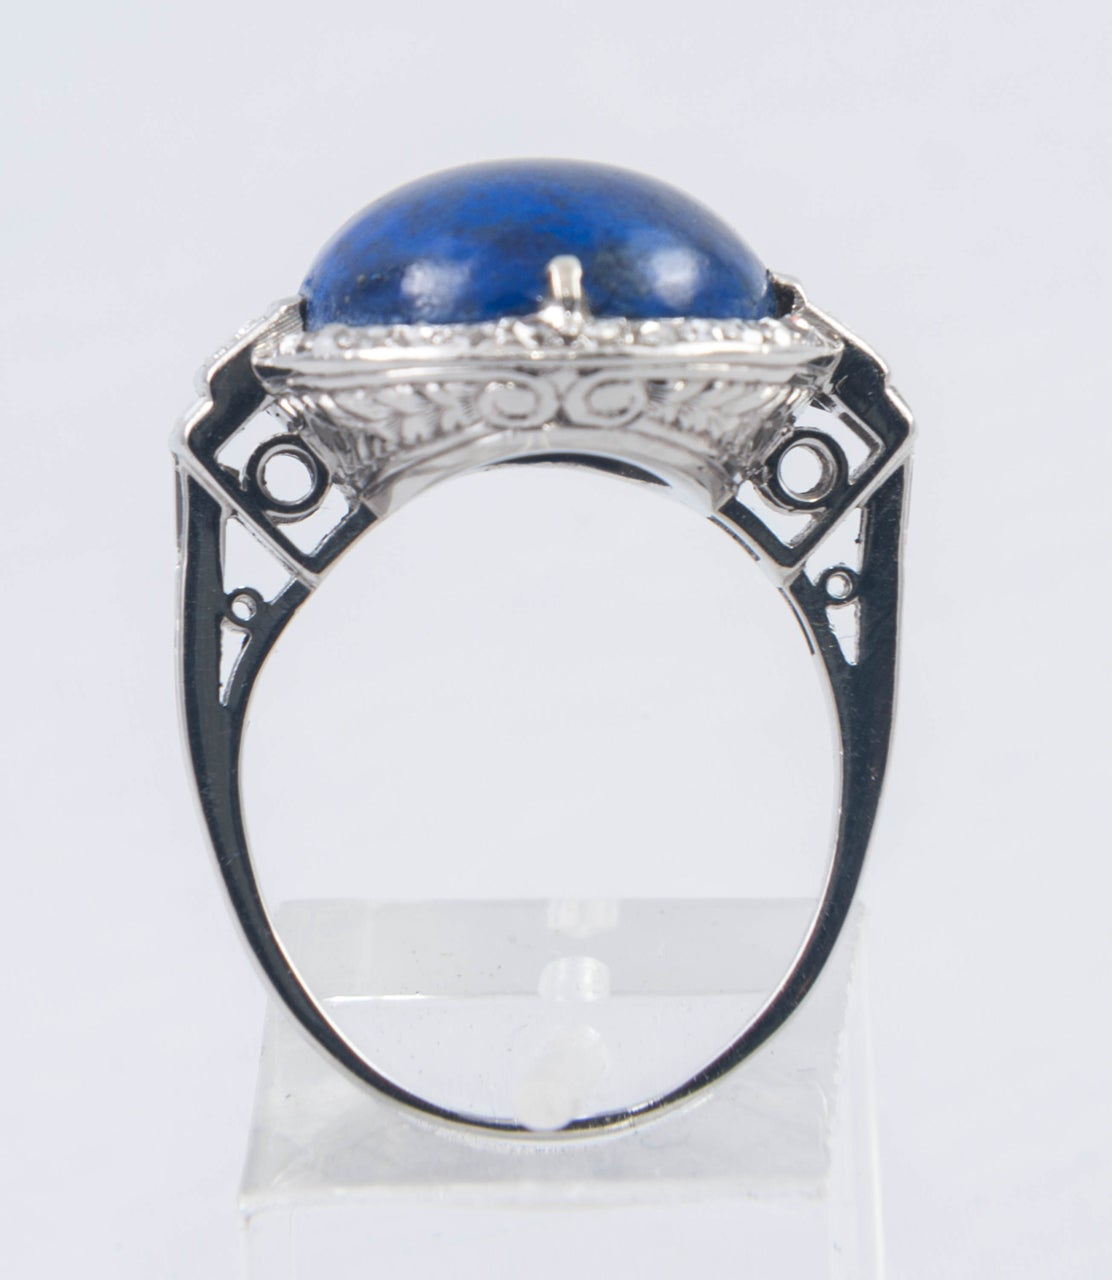 Art Deco Lapis Lazuli Diamond Ring For Sale 1